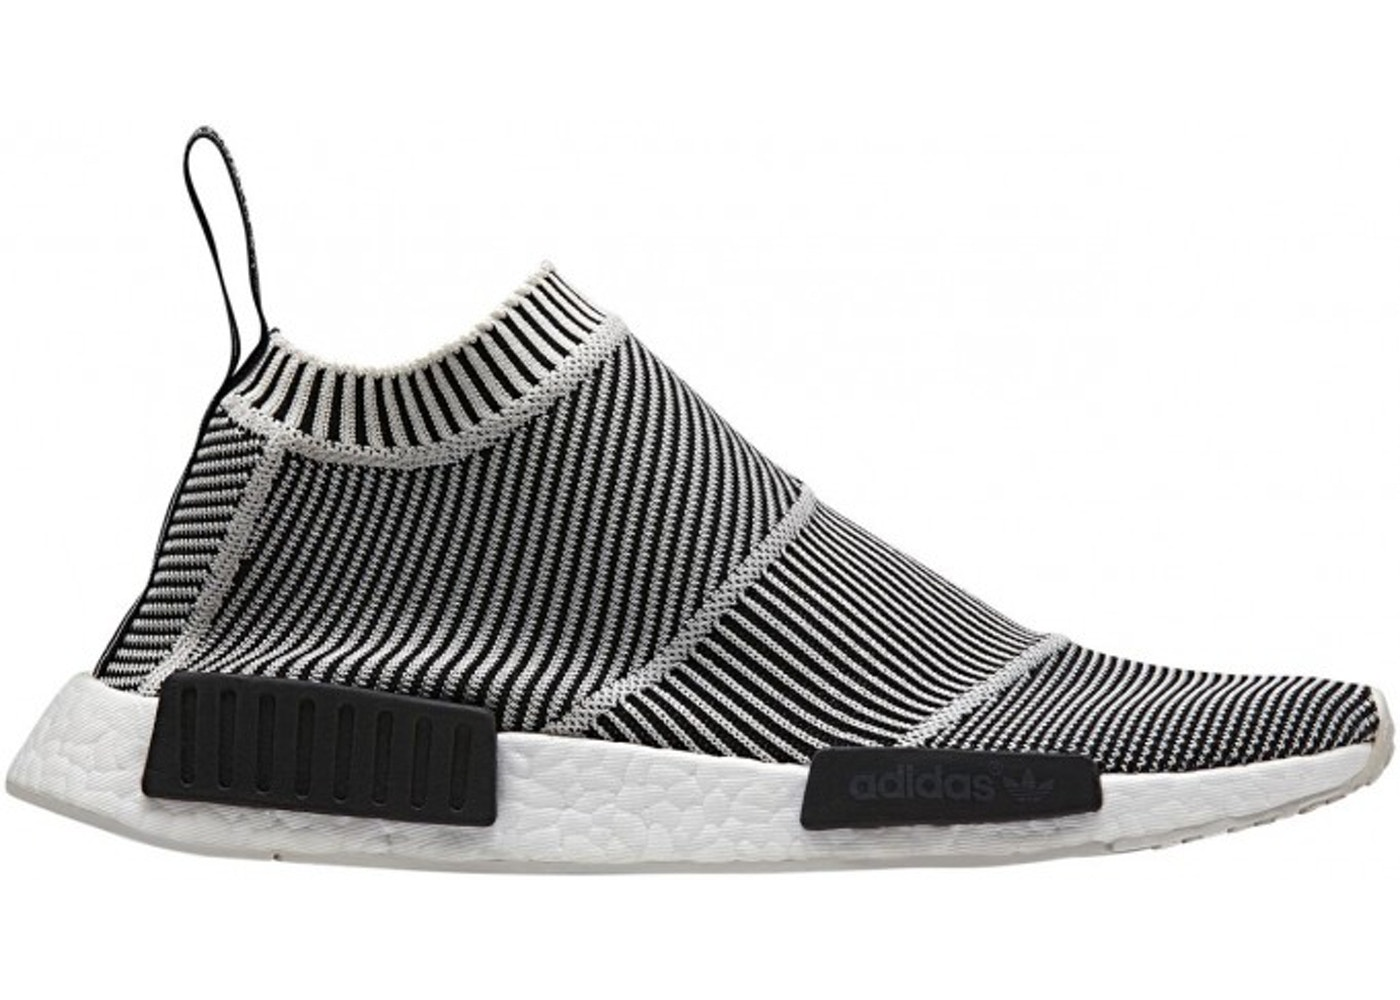 40e9b65aa adidas NMD City Sock Core Black - S79150